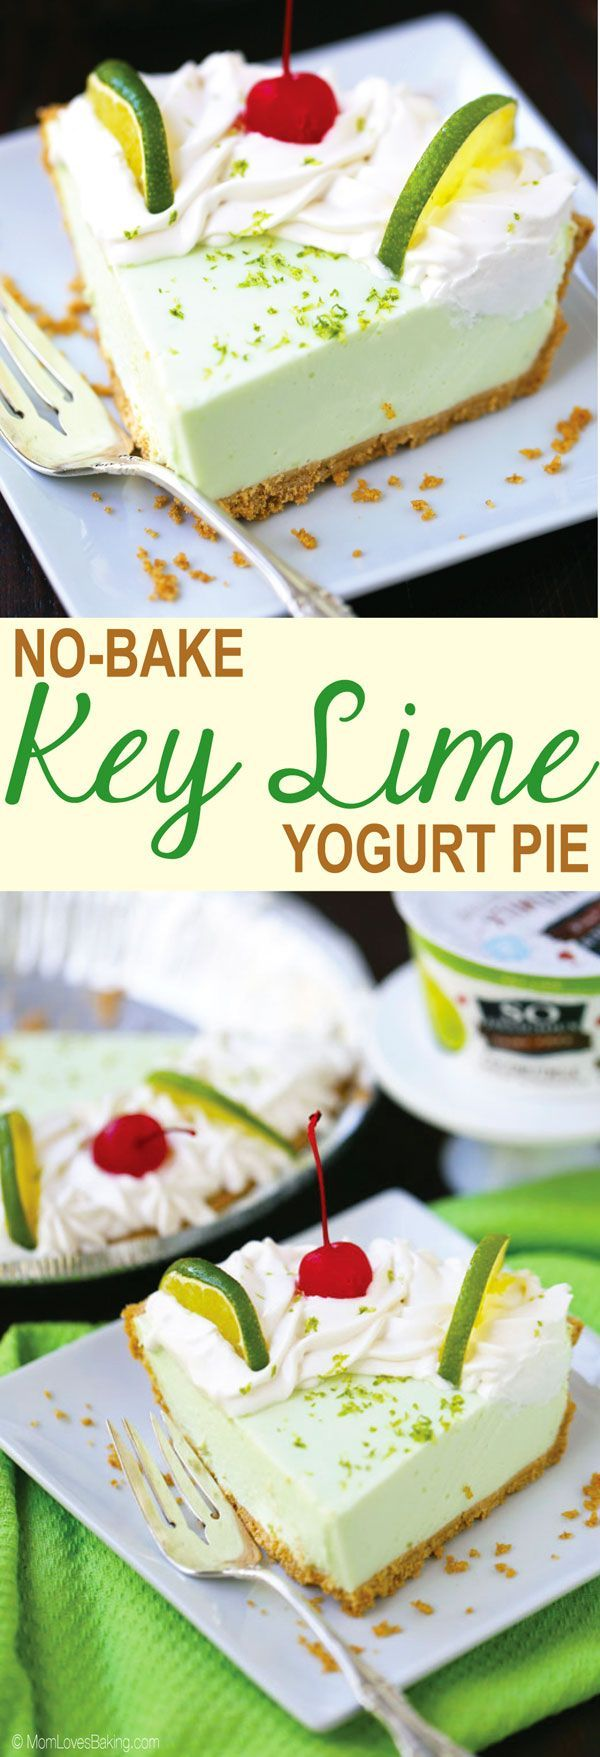 No Bake Key Lime Yogurt Pie is a delicious dairy free, gluten free alternative to the classic dessert. Get the recipe on MomLovesBaking.com. #DairyFreeGoodness #AD